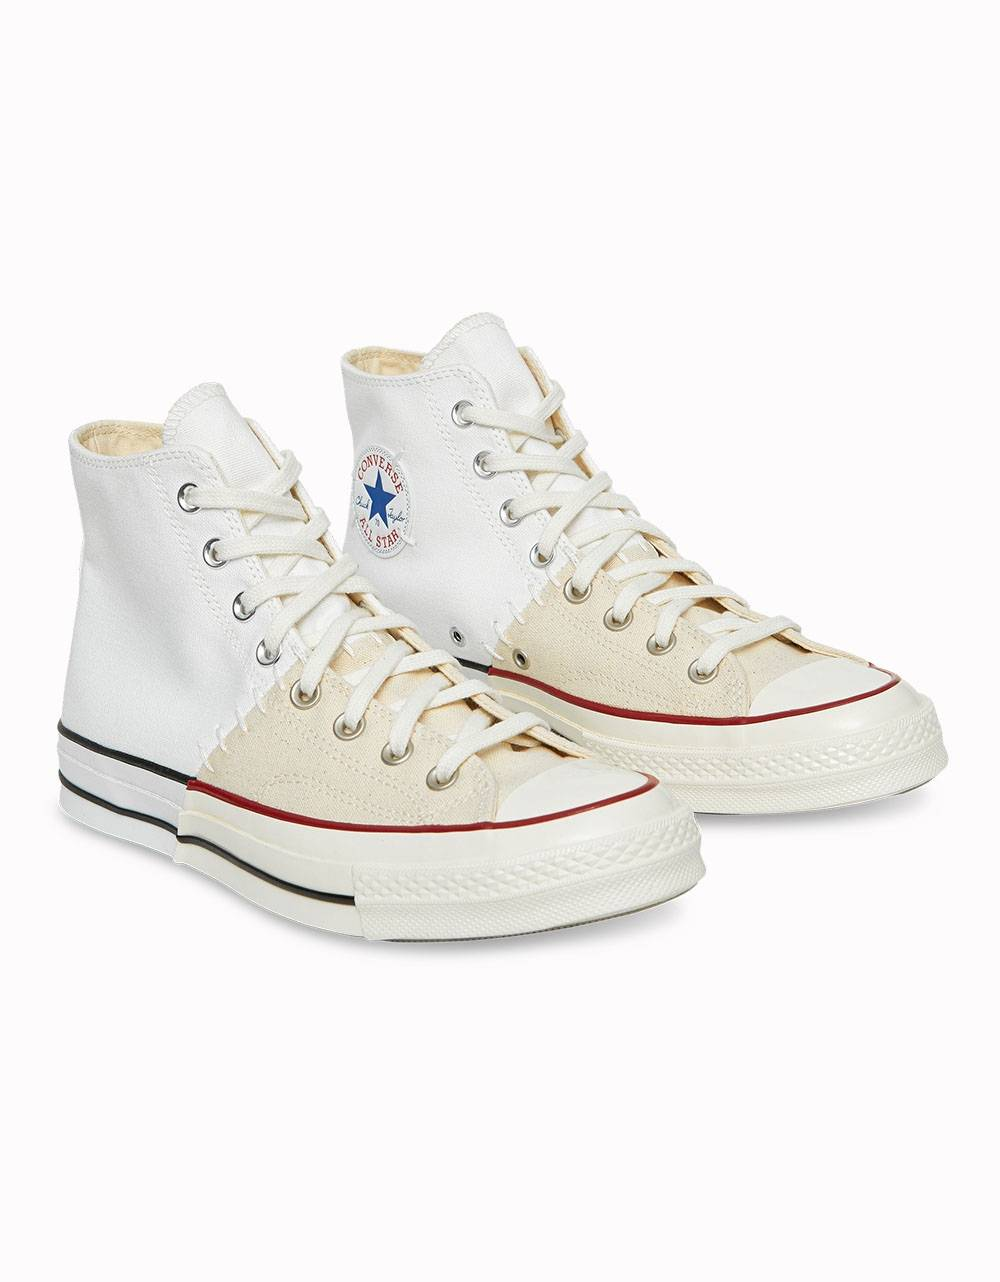 Converse Chuck Taylor 70 Recostructed High ltd - White/egret Converse Sneakers 116,39€